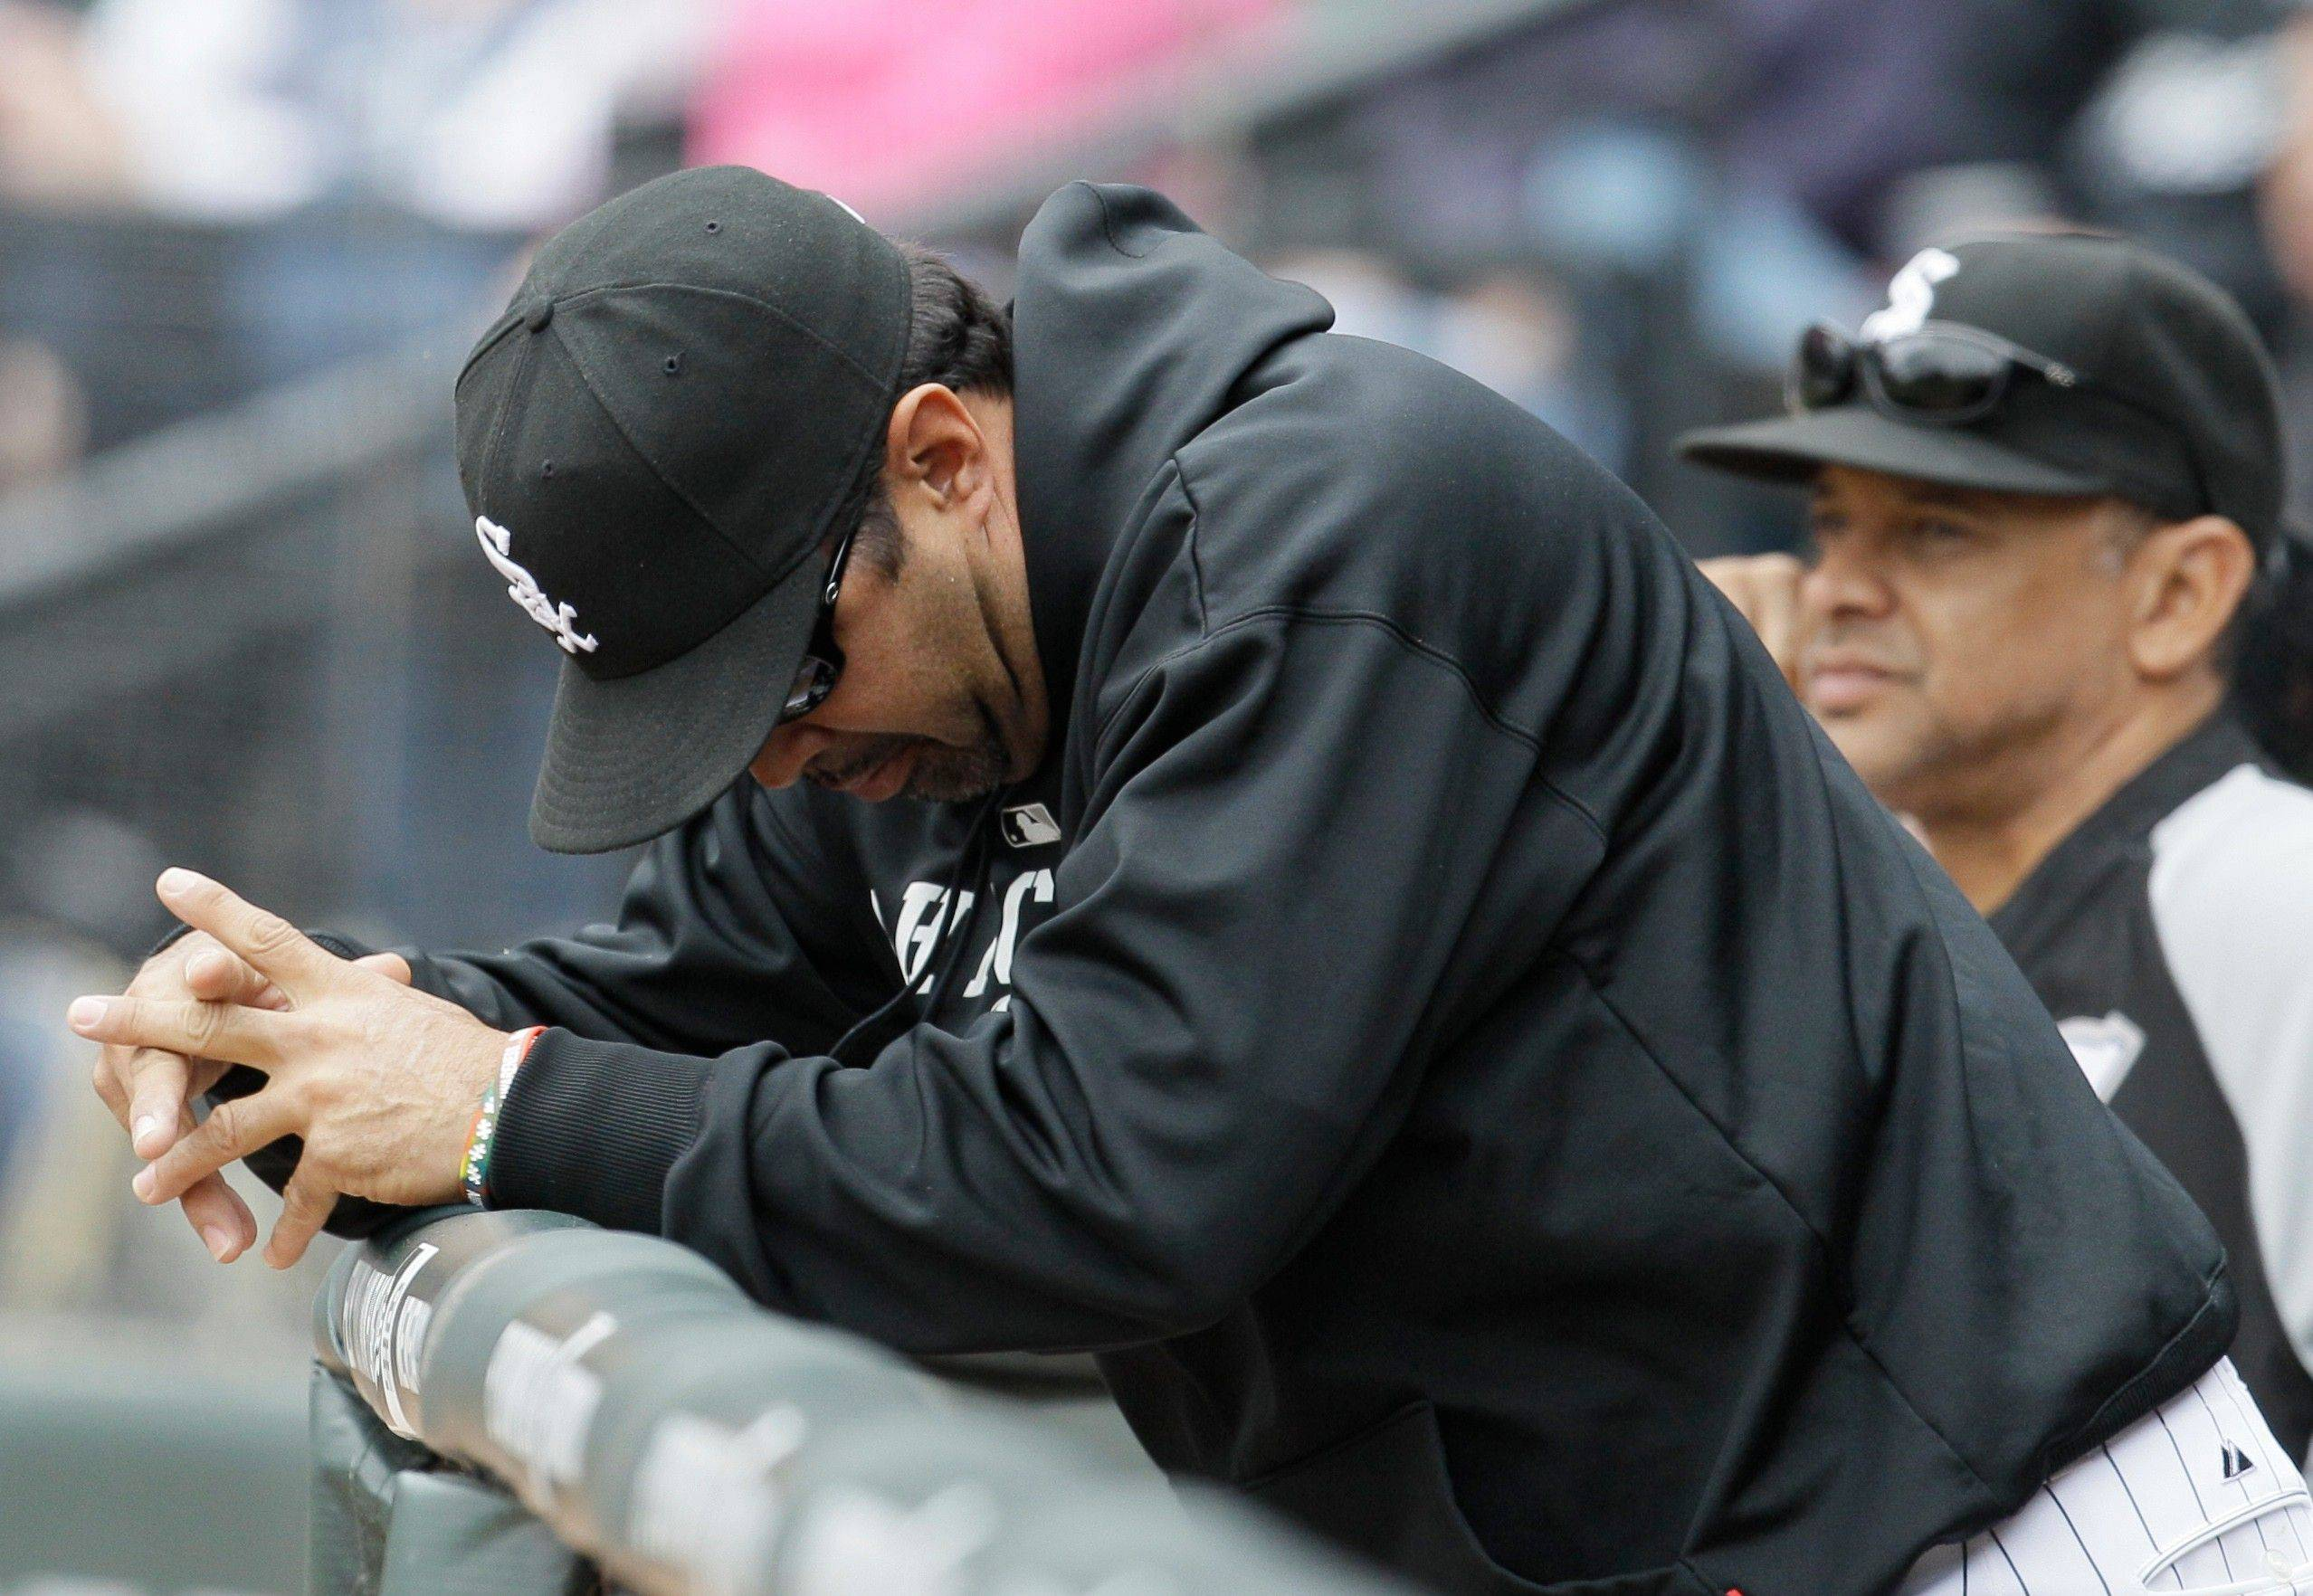 Manager Ozzie Guillen is looking for any silver lining he can find as the White Sox' slump hits alarming proportions.